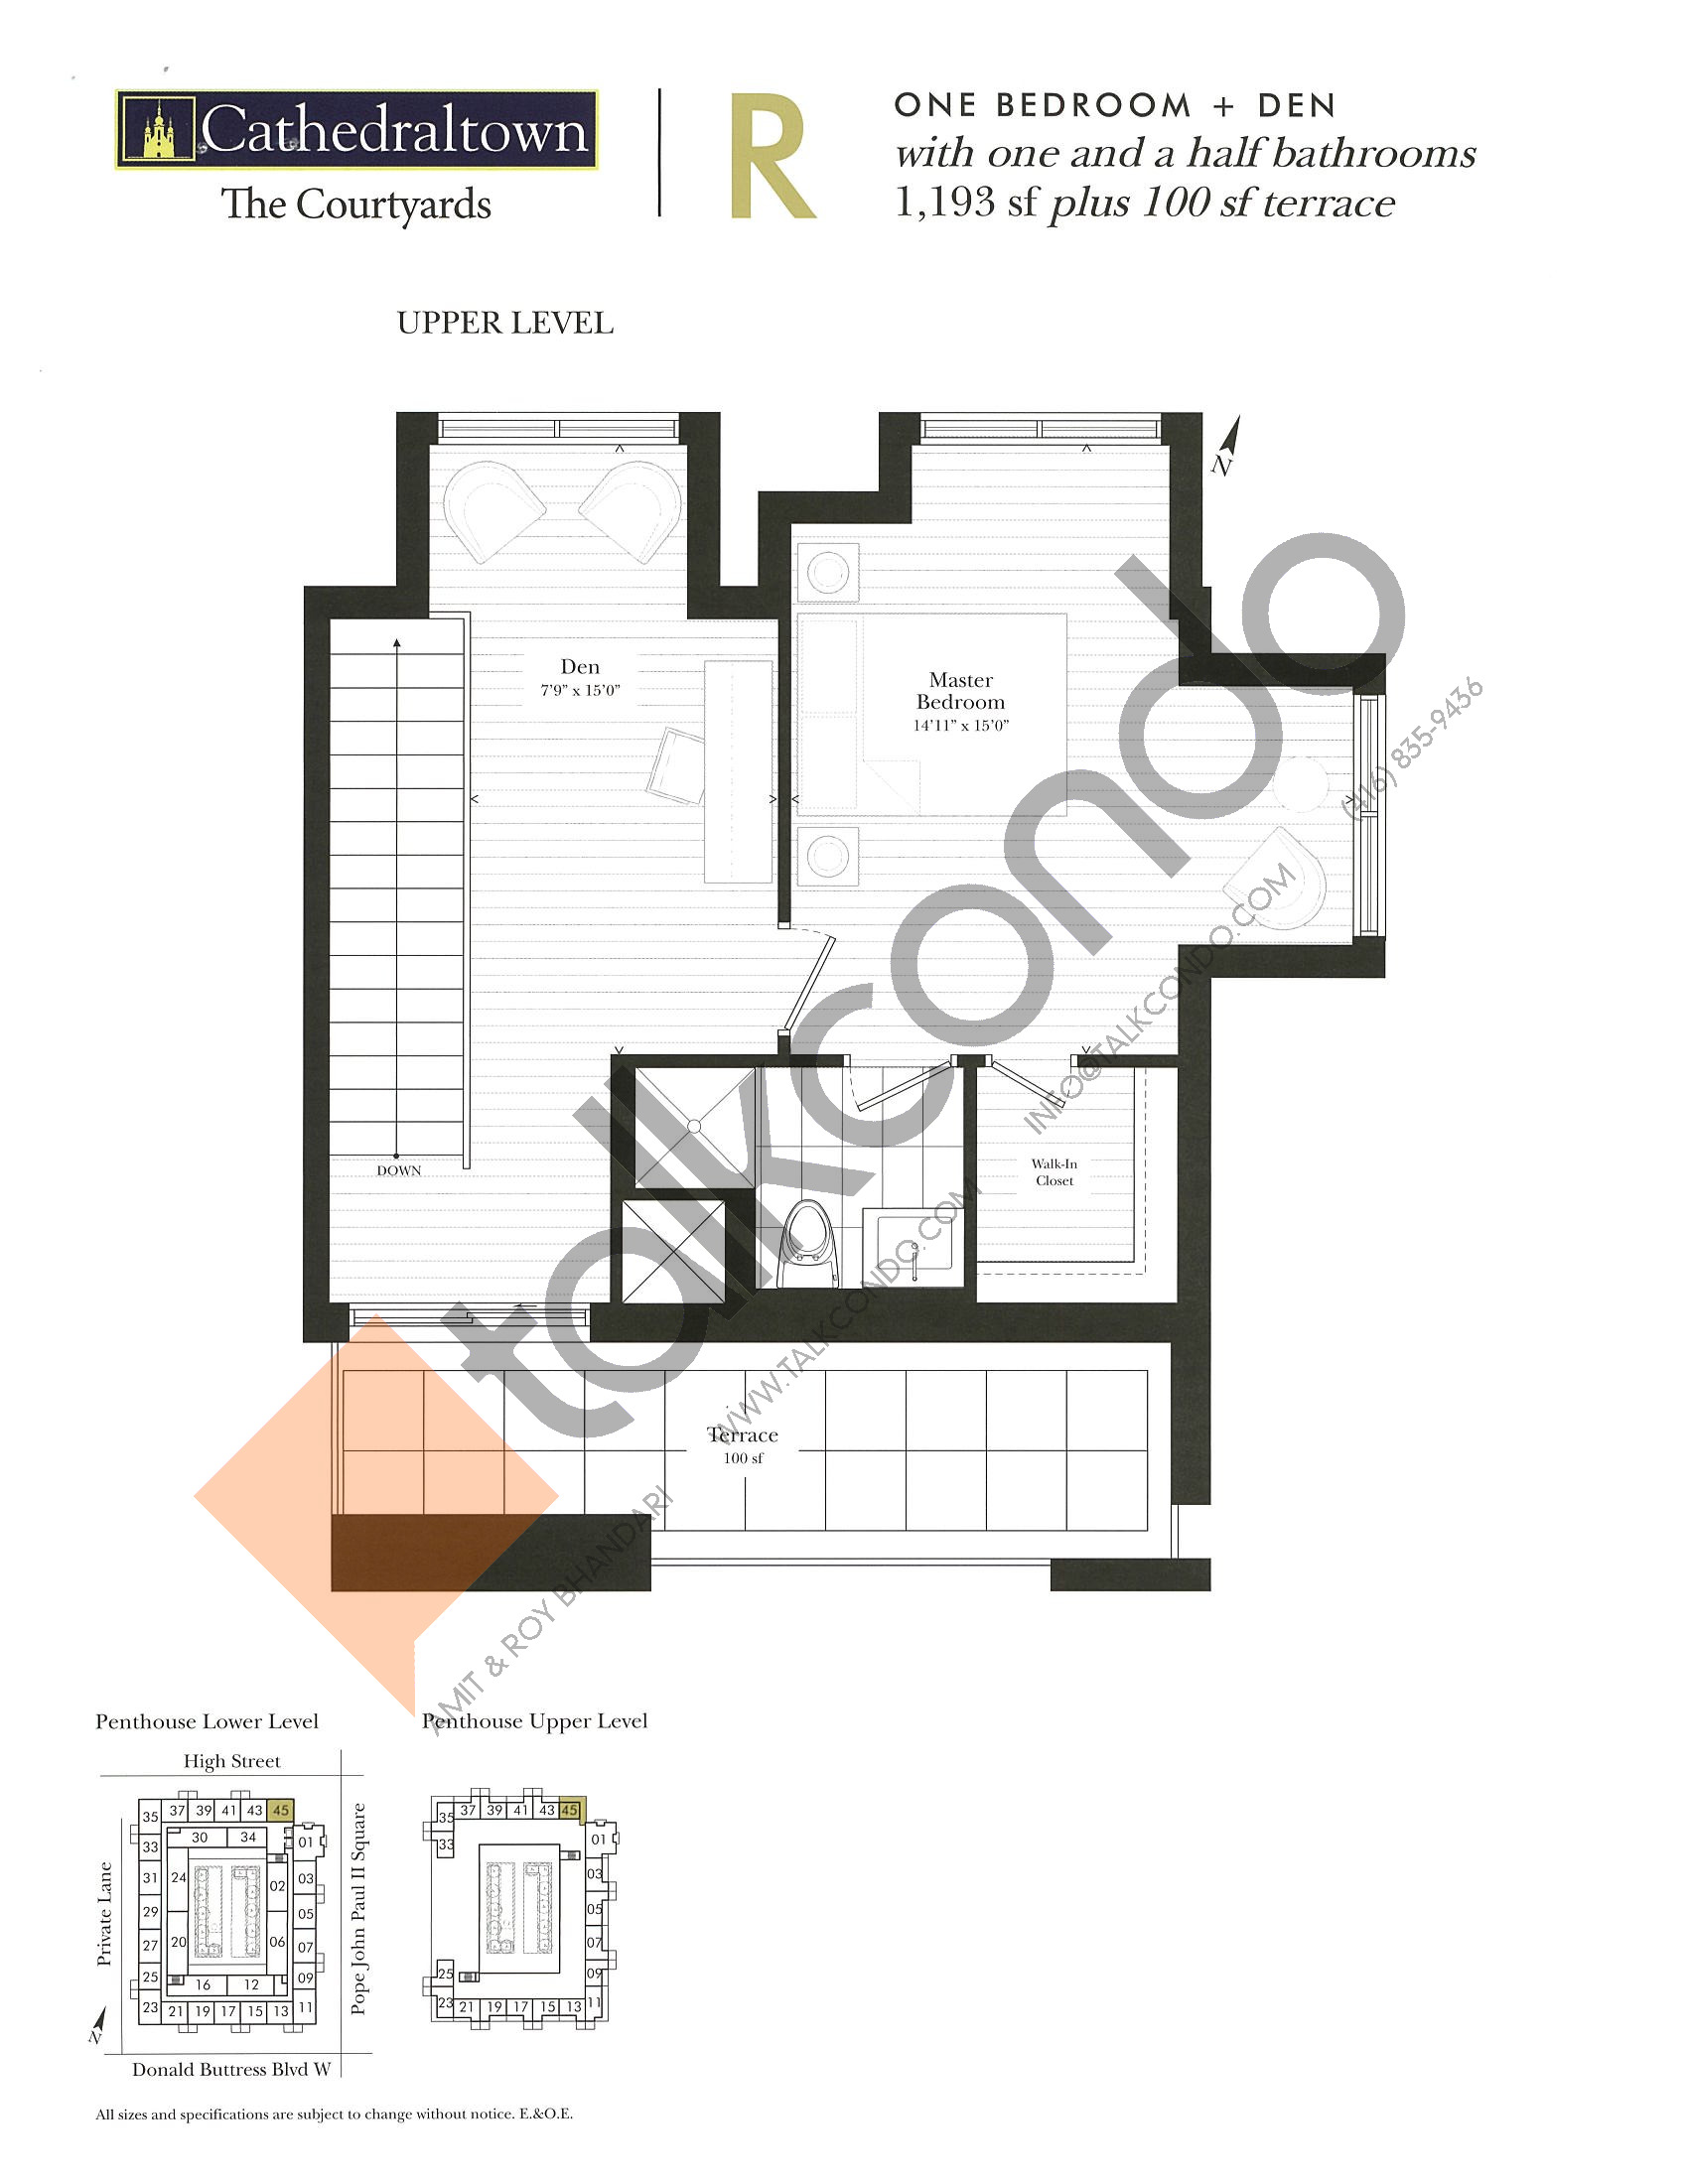 Unit R (Upper) Floor Plan at The Courtyards at Cathedraltown Condos - 1193 sq.ft